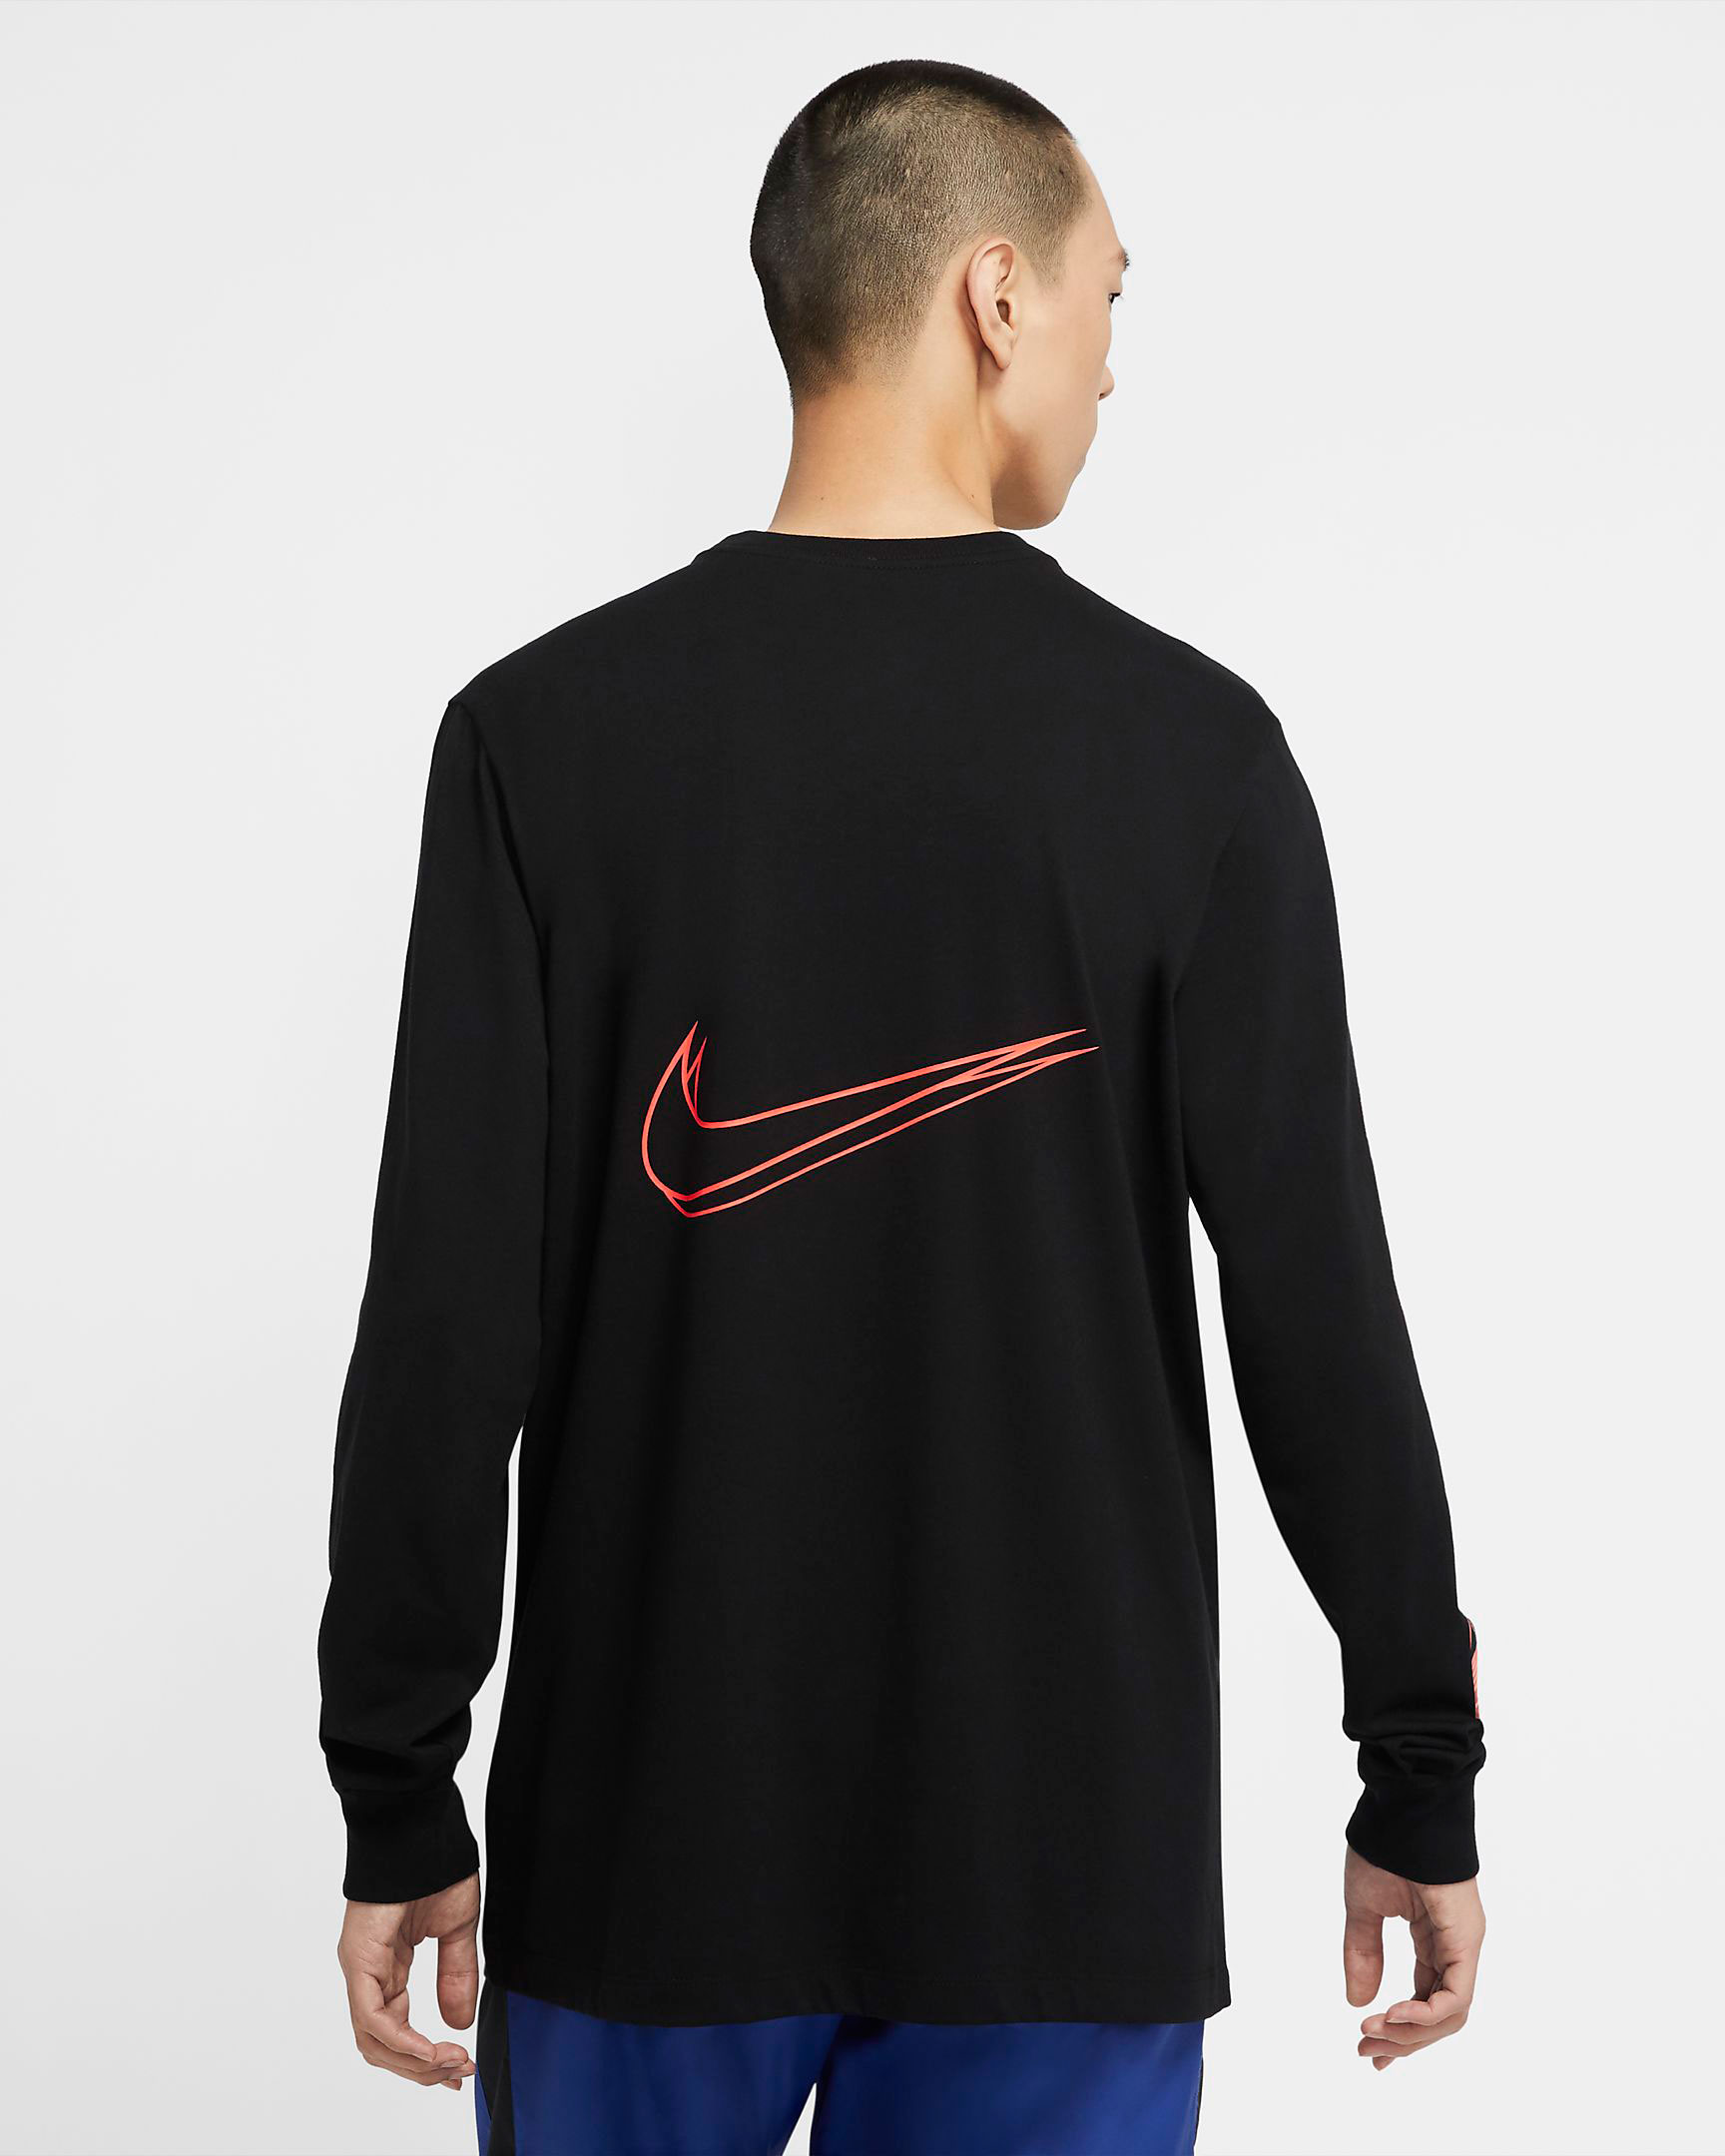 nike-worldwide-long-sleeve-shirt-black-2